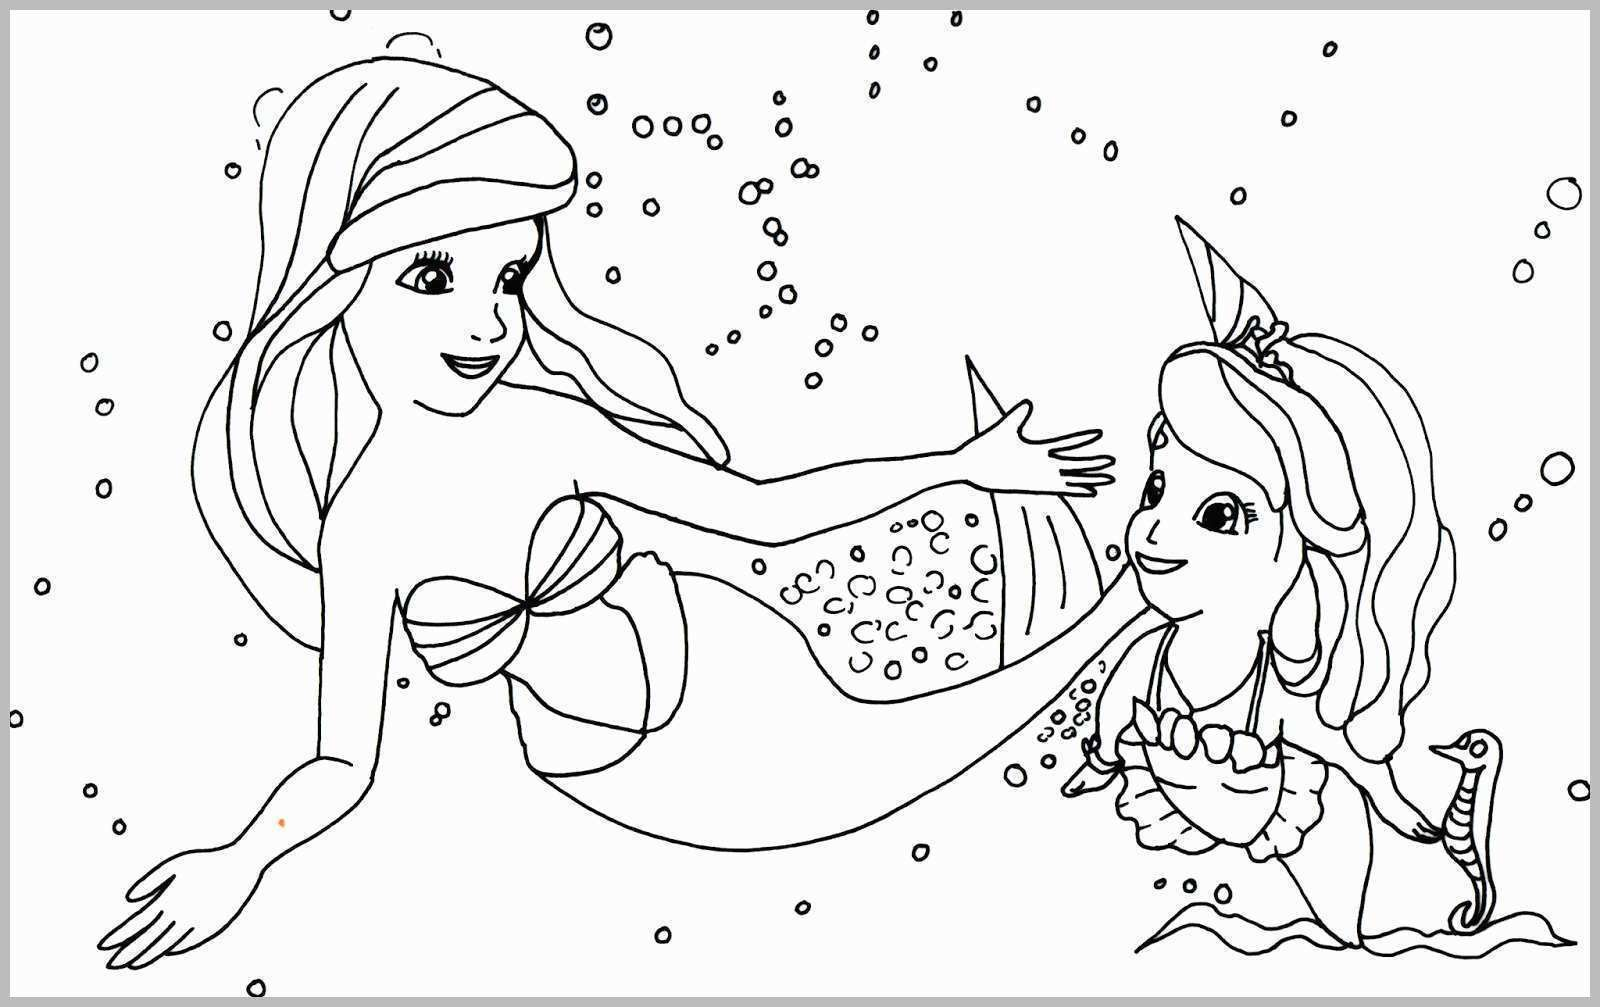 sofia pictures to color princes sofia to color for children sofia the first kids color to pictures sofia